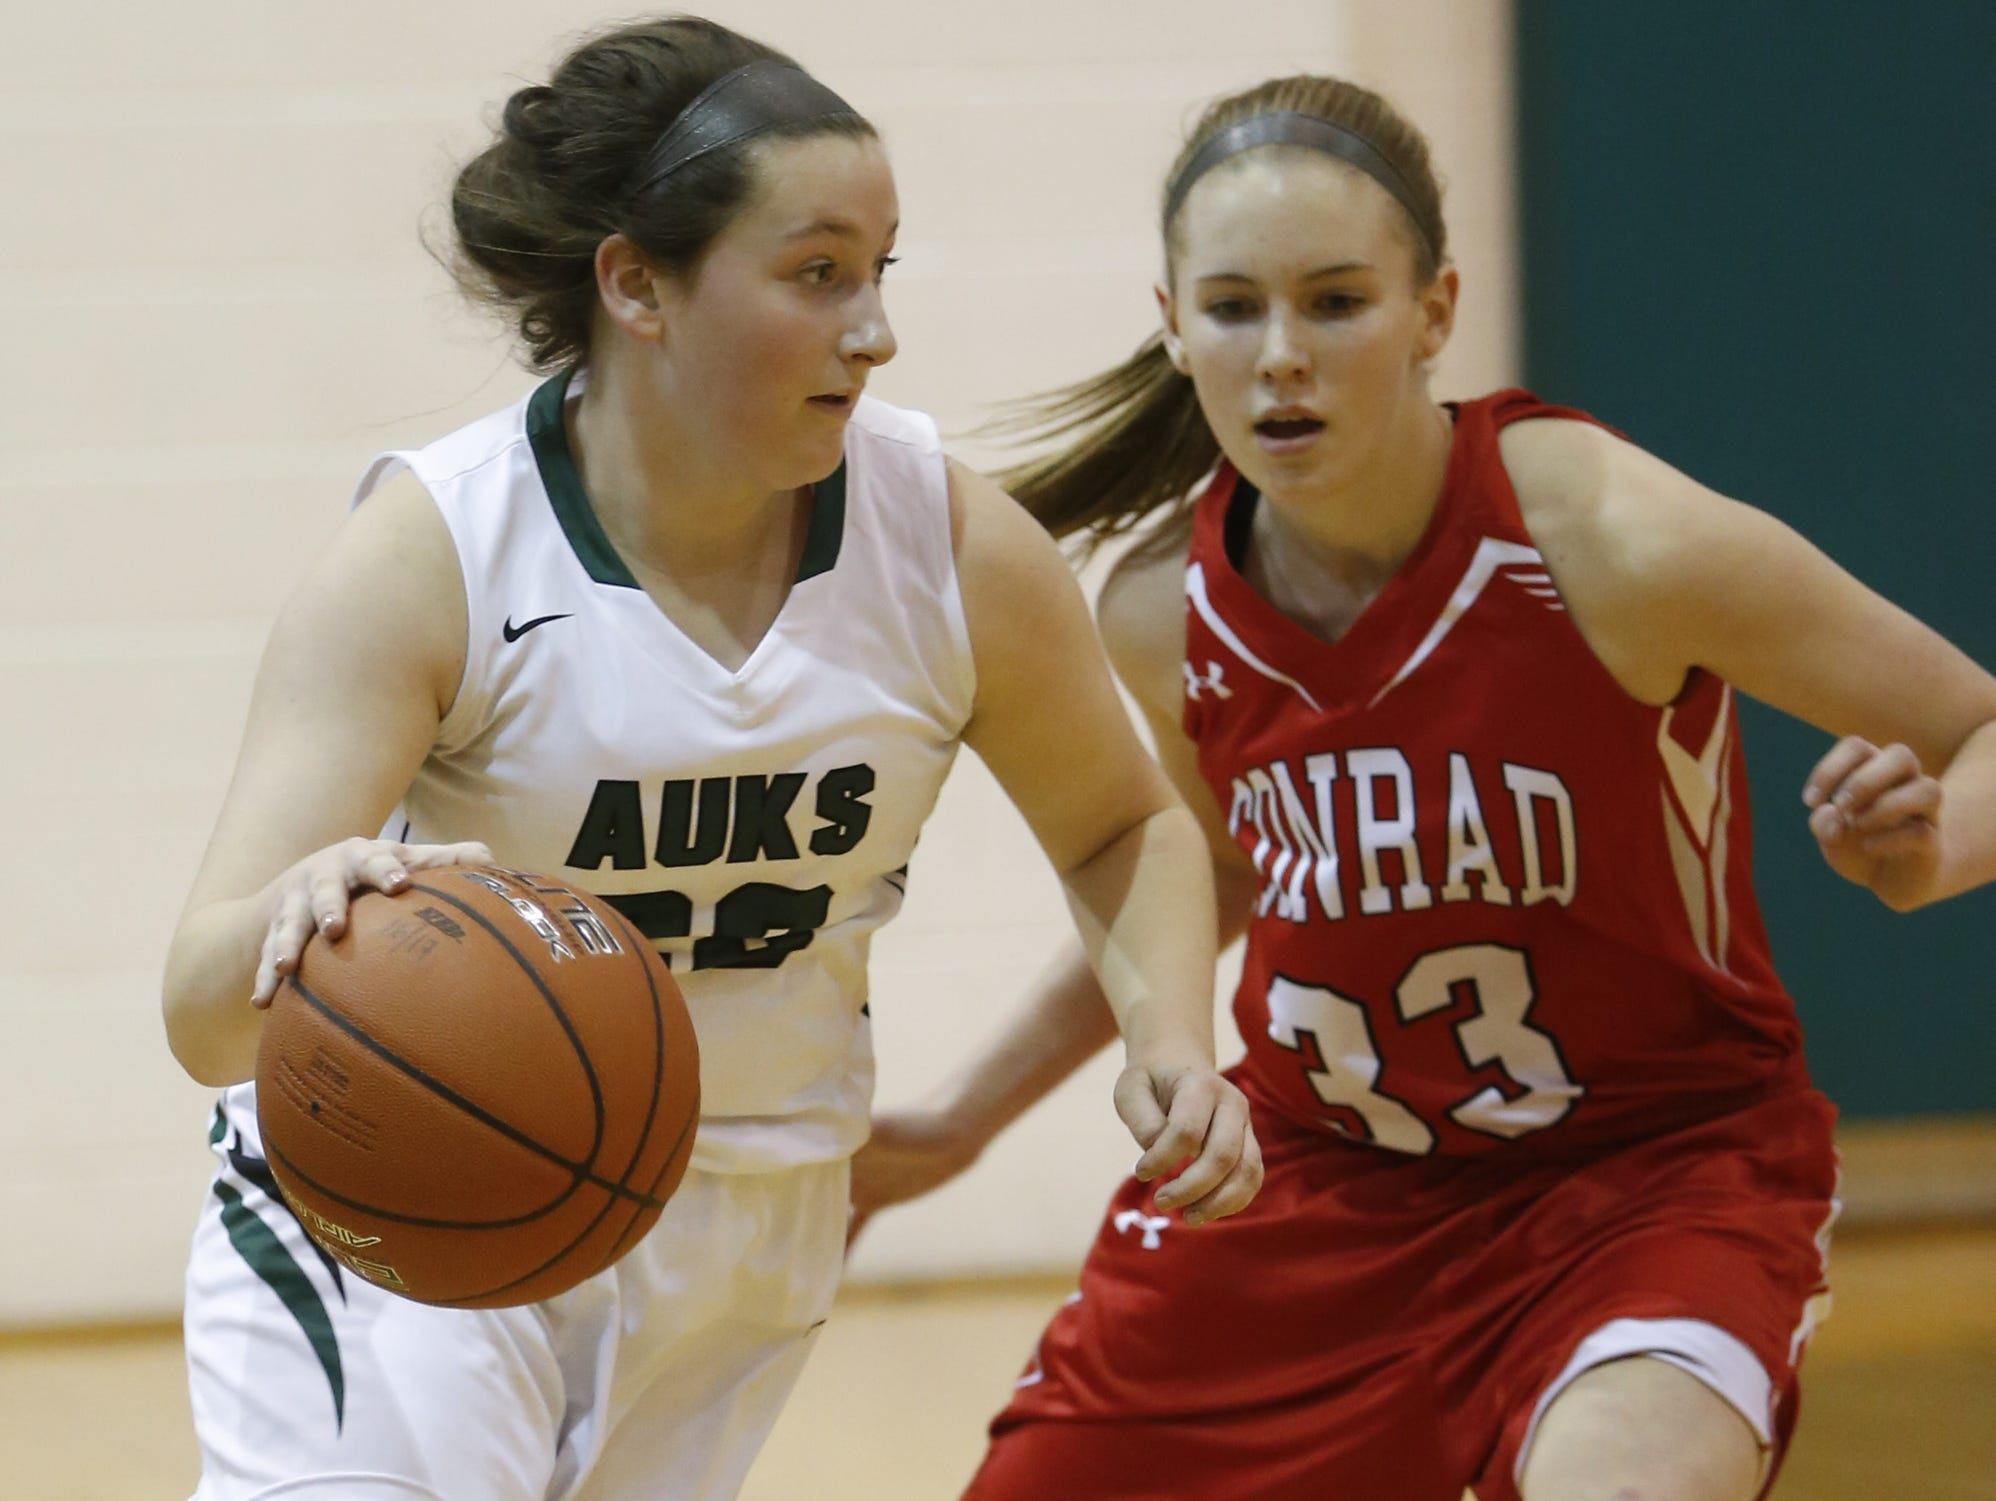 Archmere's Emma McCann (22), seen here against Conrad, led her team with nine points as the Auks defeated Wilmington Friends 34-26 in the first round of the DIAA girls basketball tournament on Tuesday.